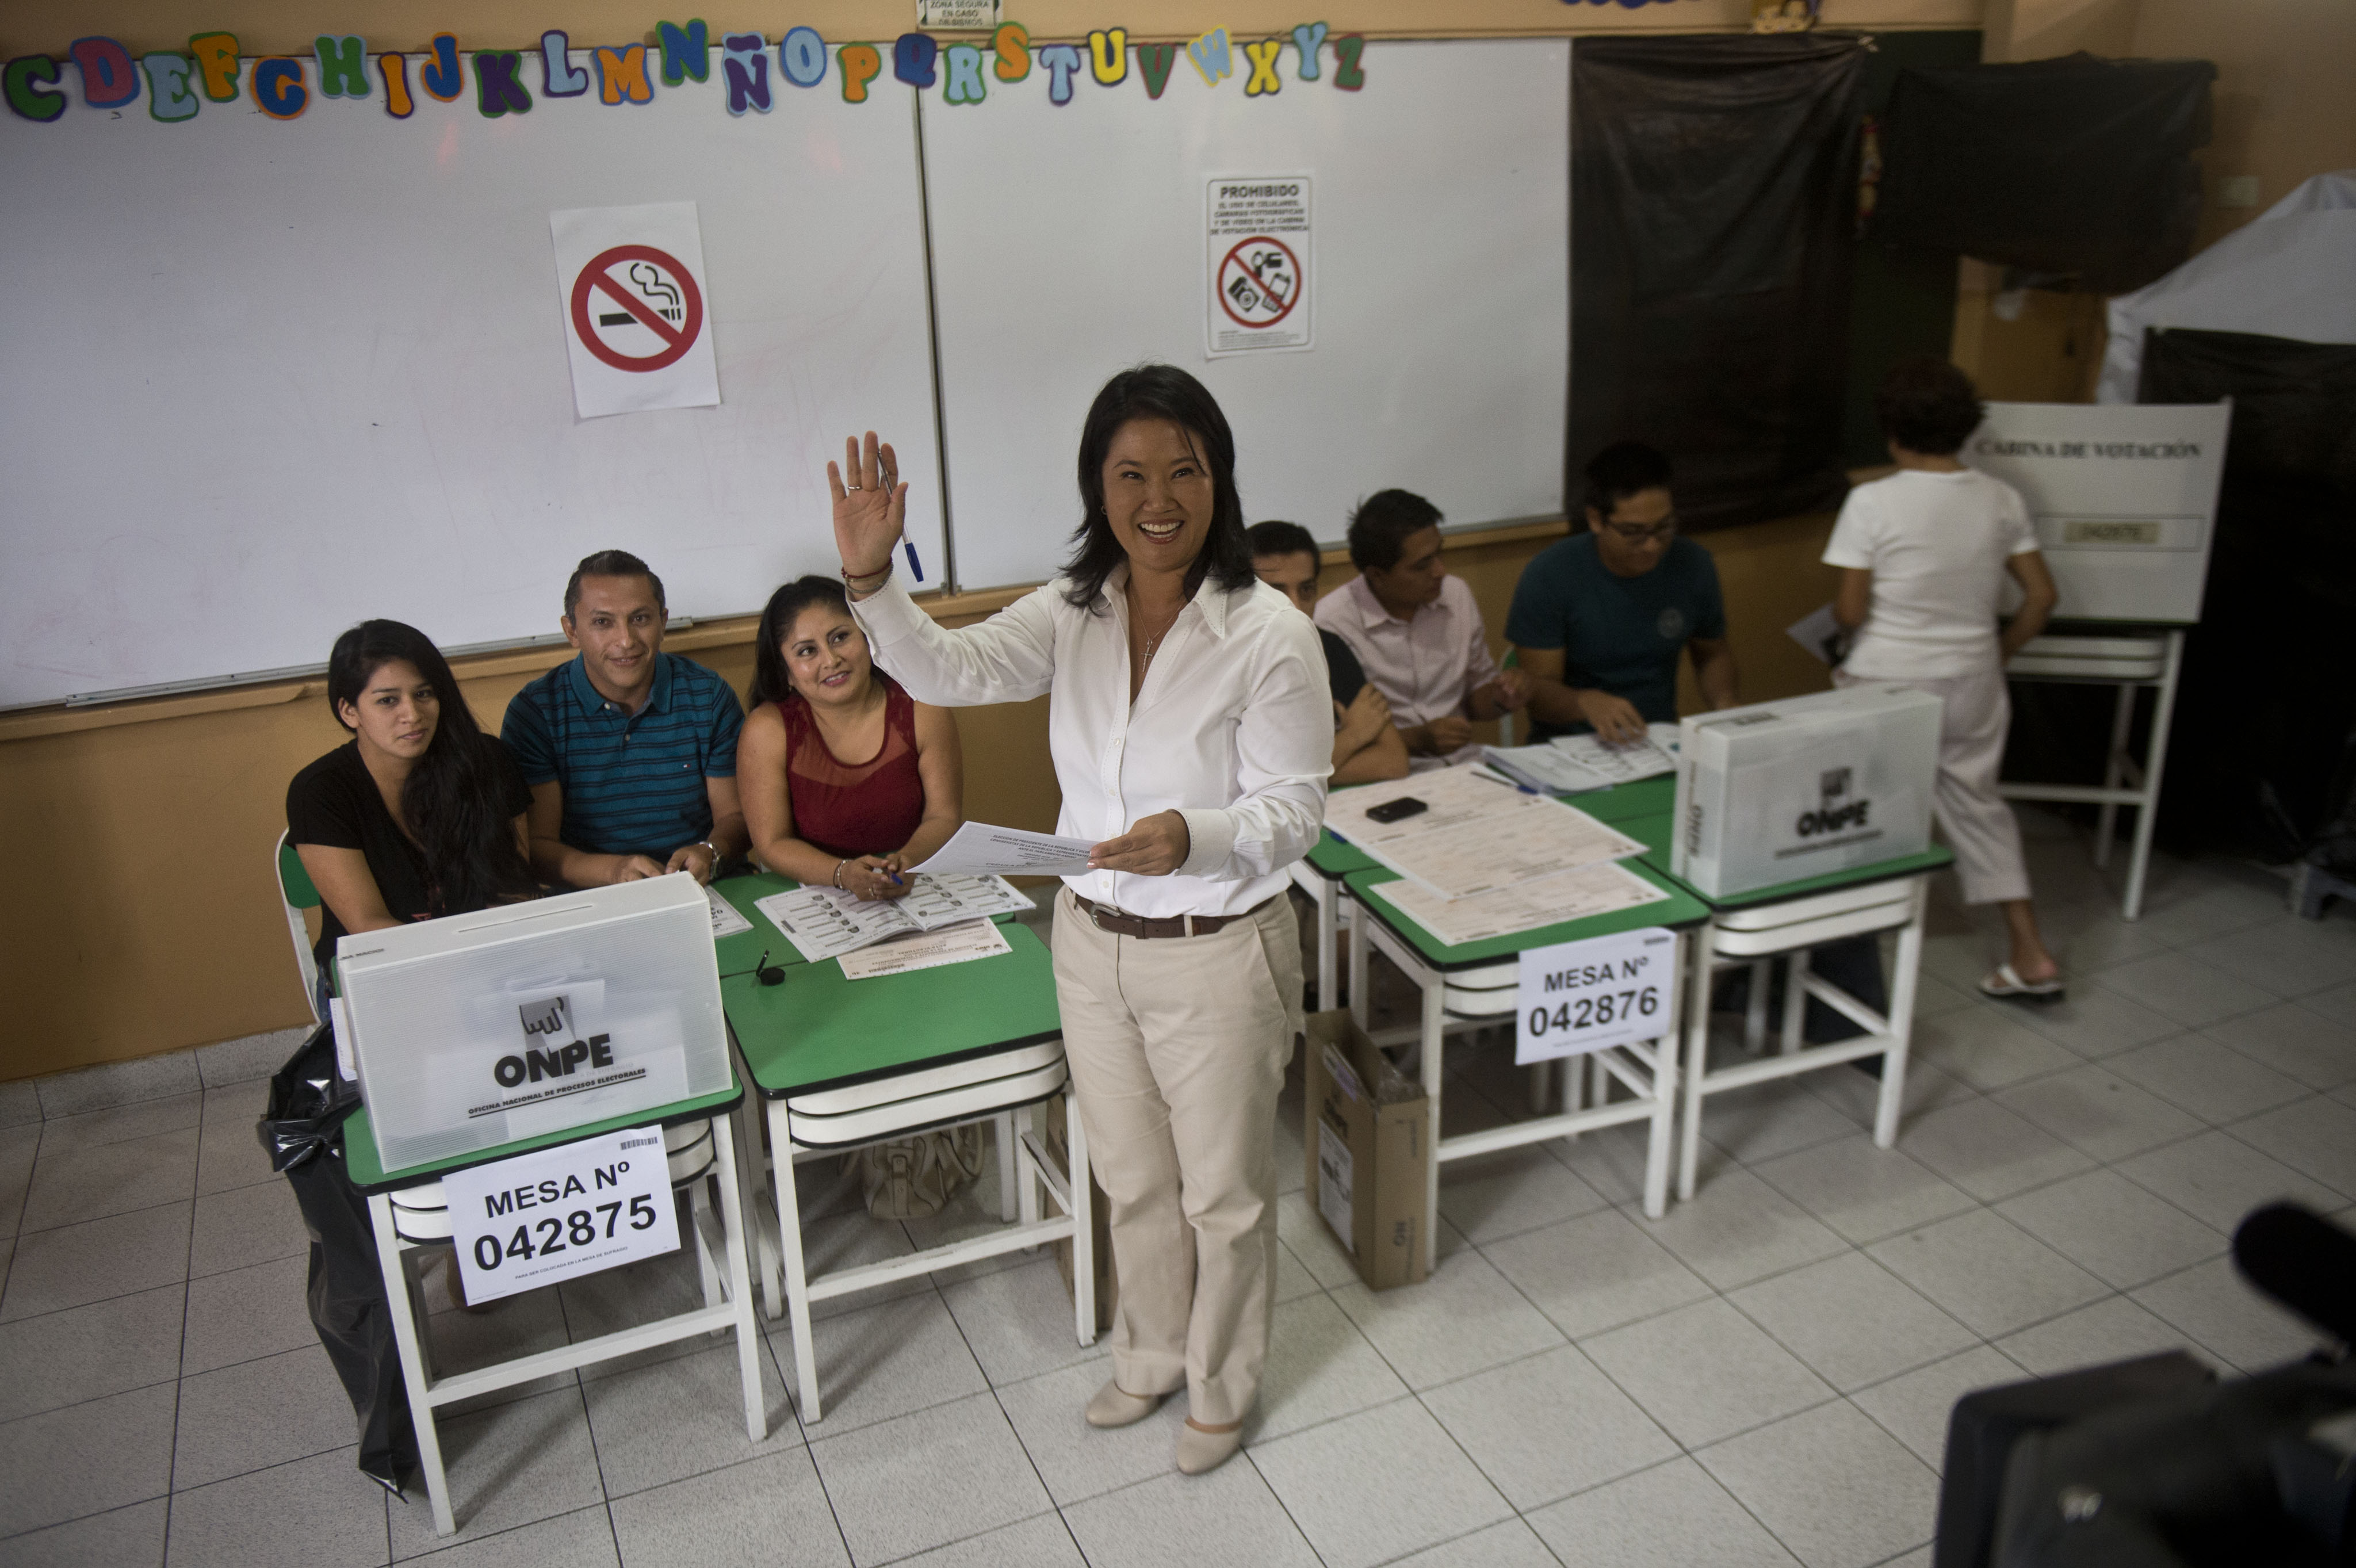 Peru´s presidential candidate, Keiko Fujimori, casts her vote during general elections, in Lima on April 10, 2016 Almost 23 million Peruvians in Peru and abroad are expected to decide whether Keiko Fujimori, daughter of an ex-president jailed for massacres, should become their first female head of state in an election marred by alleged vote-buying and guerrilla attacks that killed four. / AFP PHOTO / ERNESTO BENAVIDES